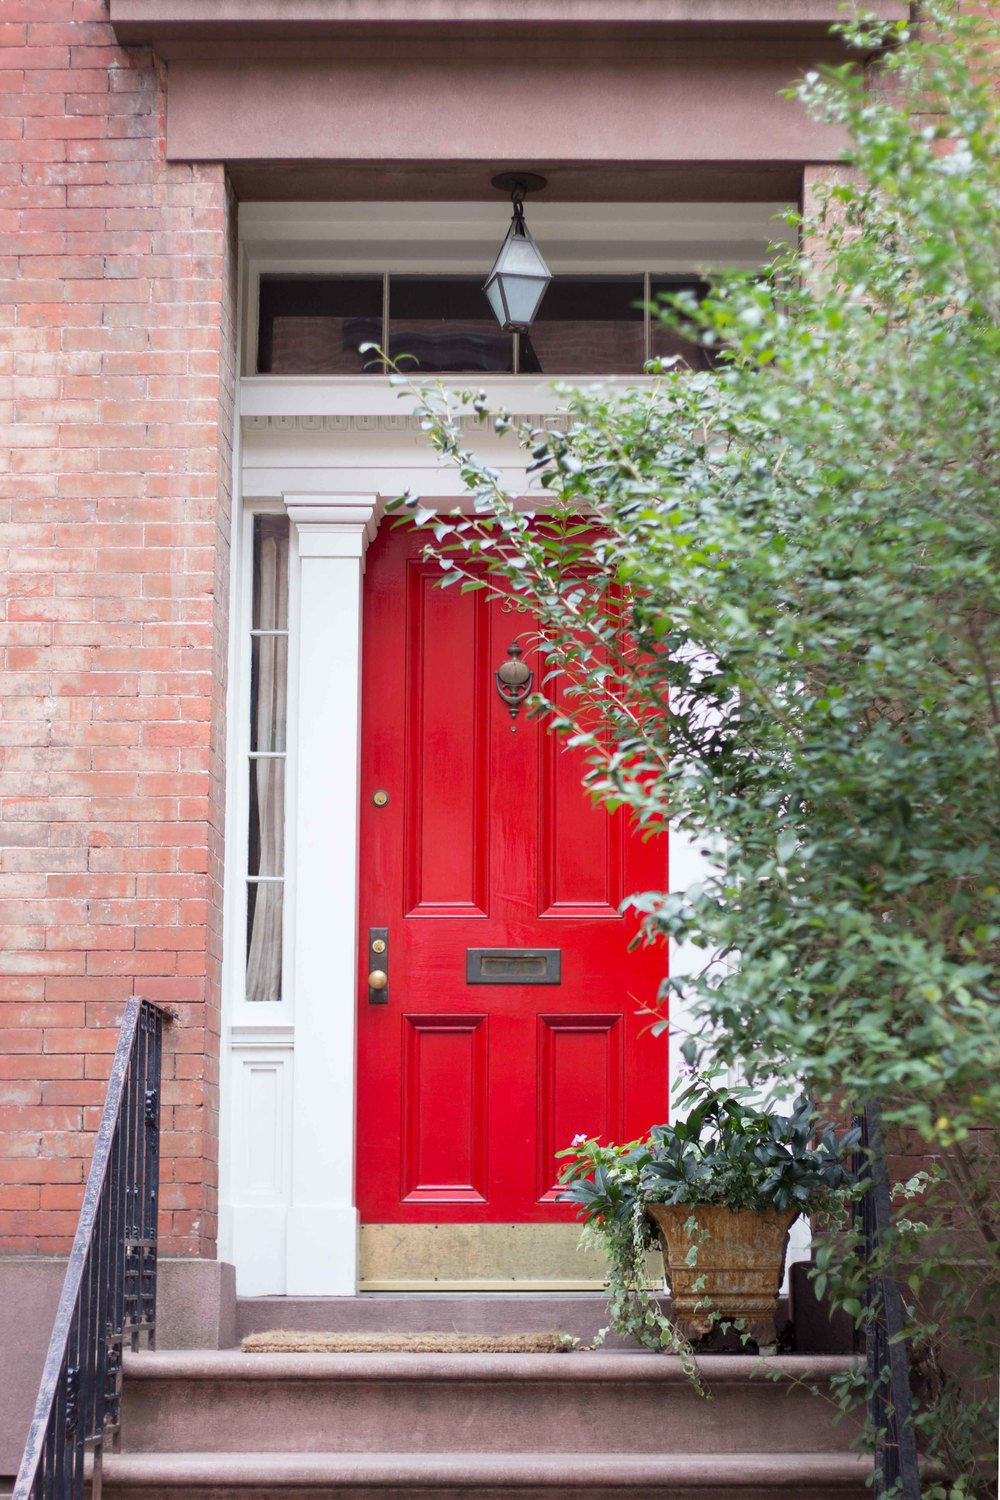 west village new york red door brownstone irina korrelat.jpg